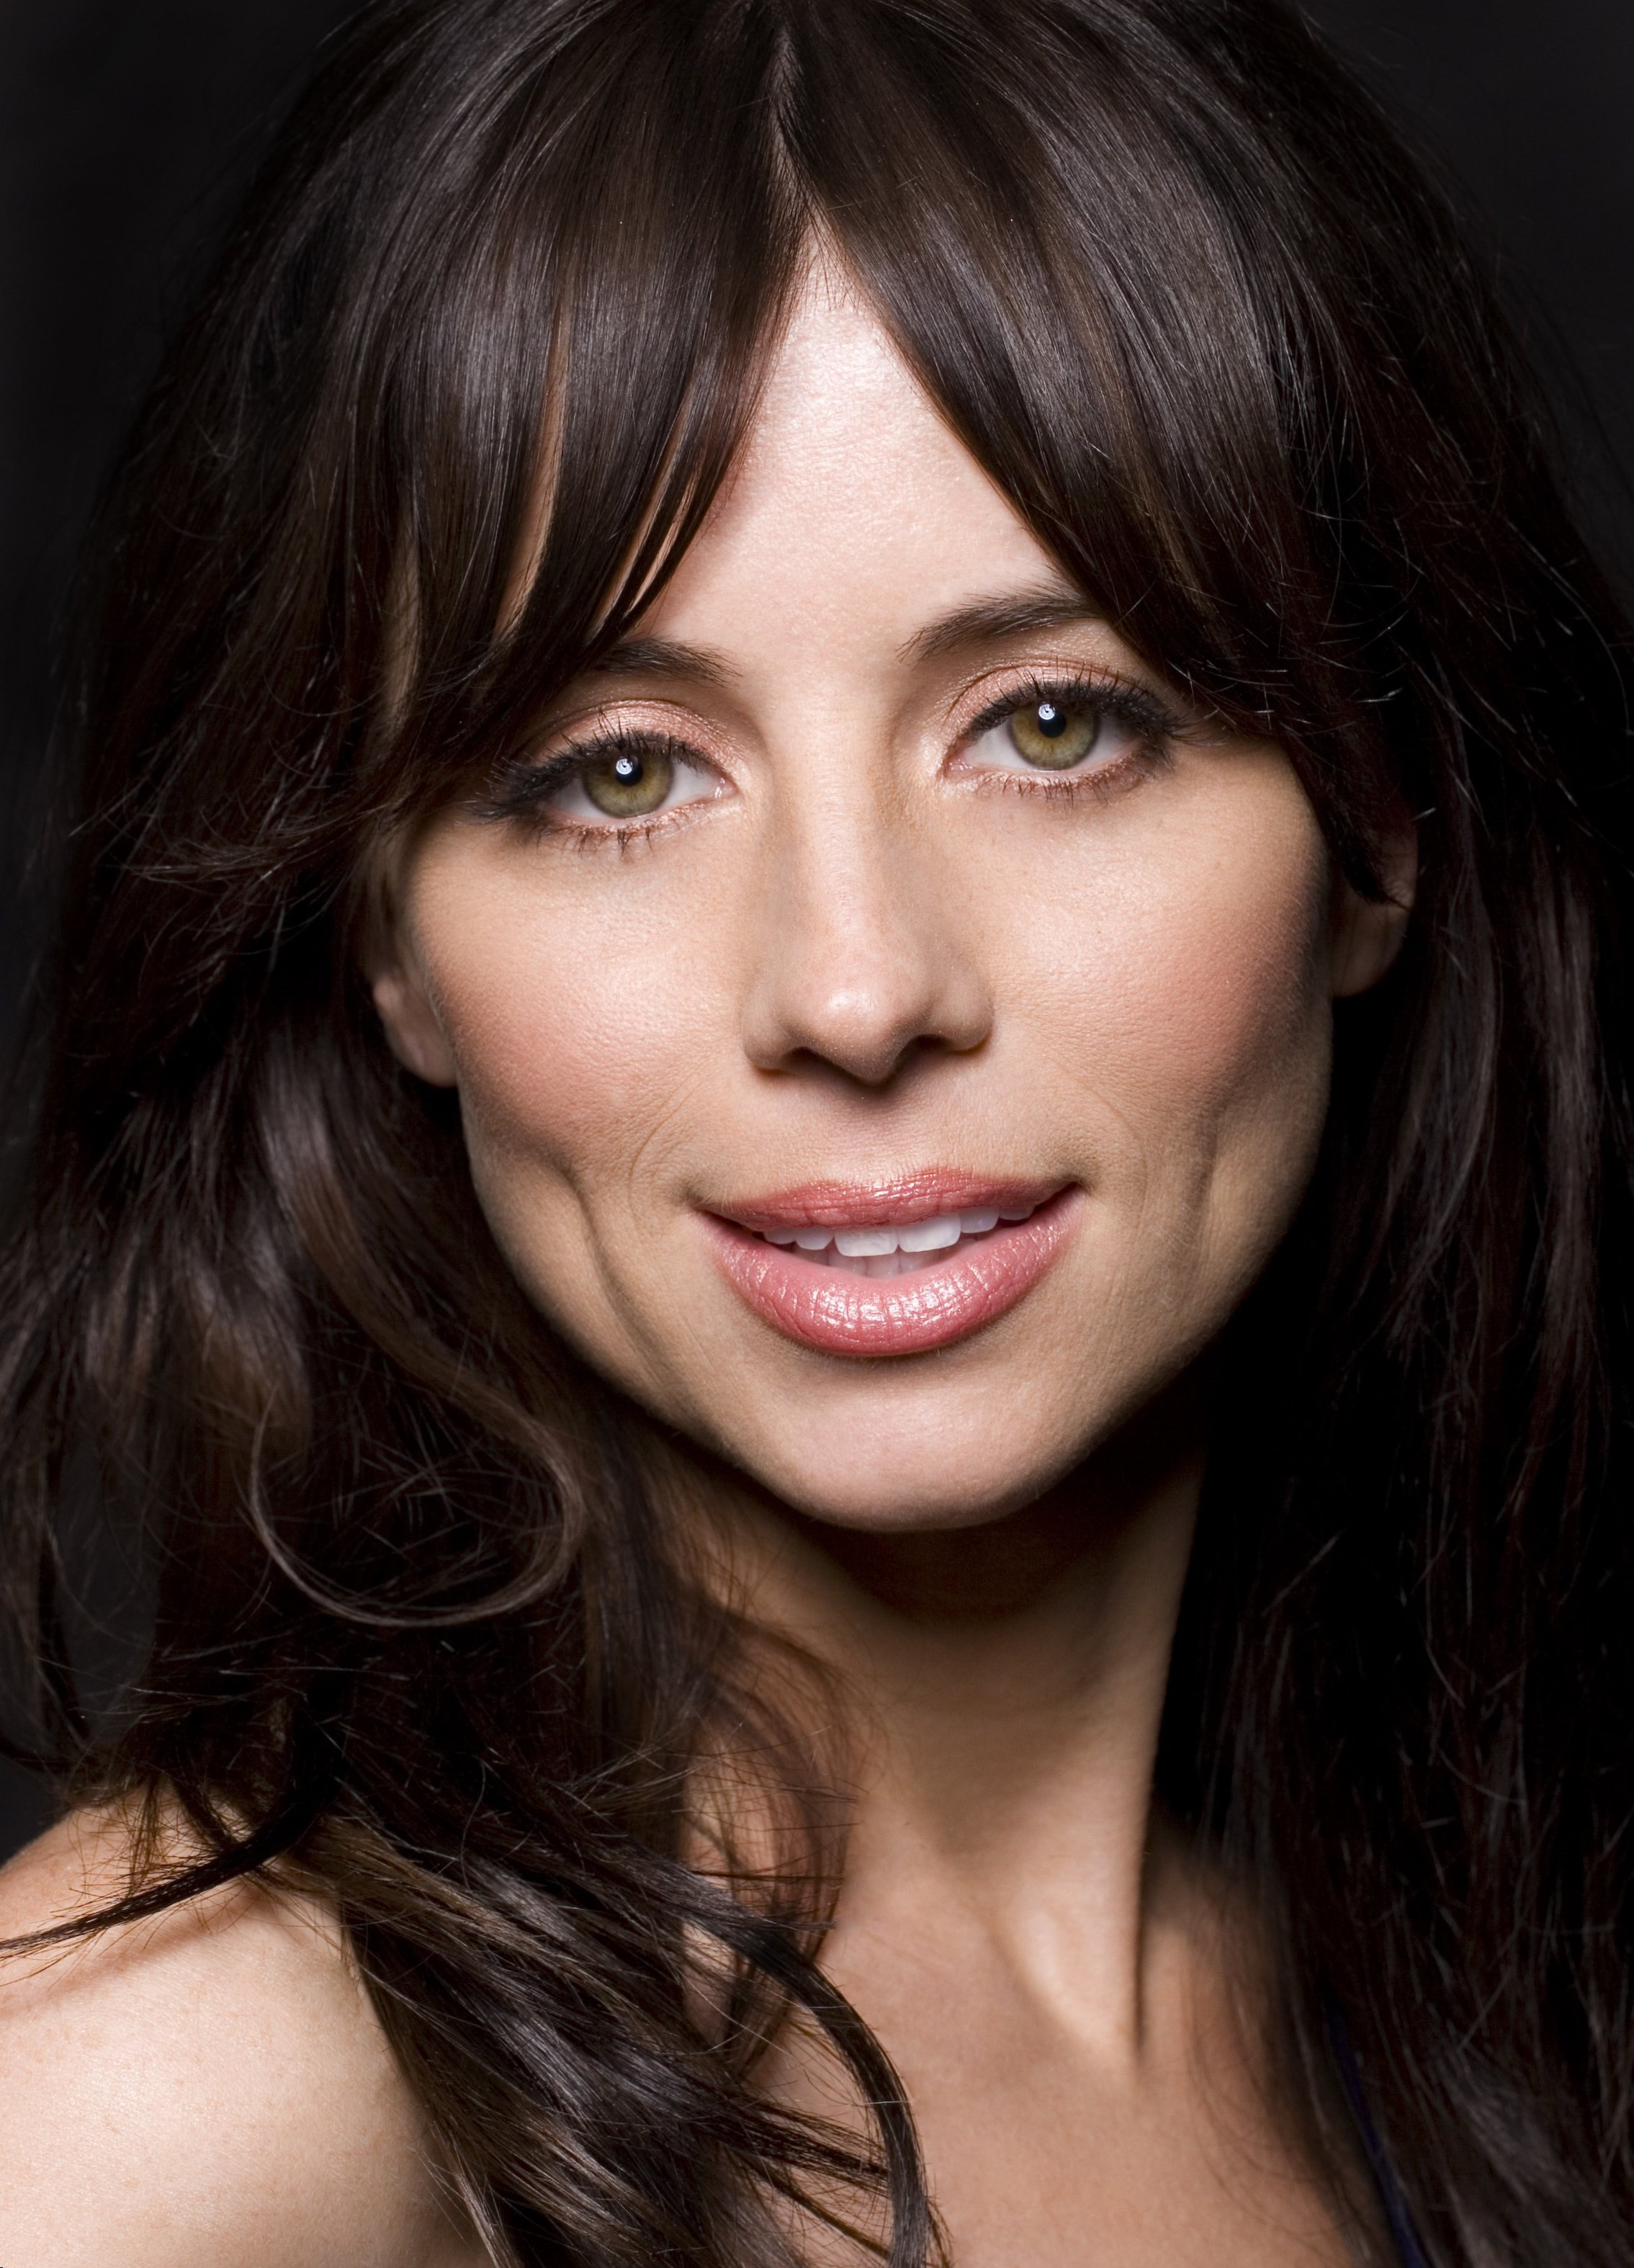 Natasha Leggero - Height, Weight, Age